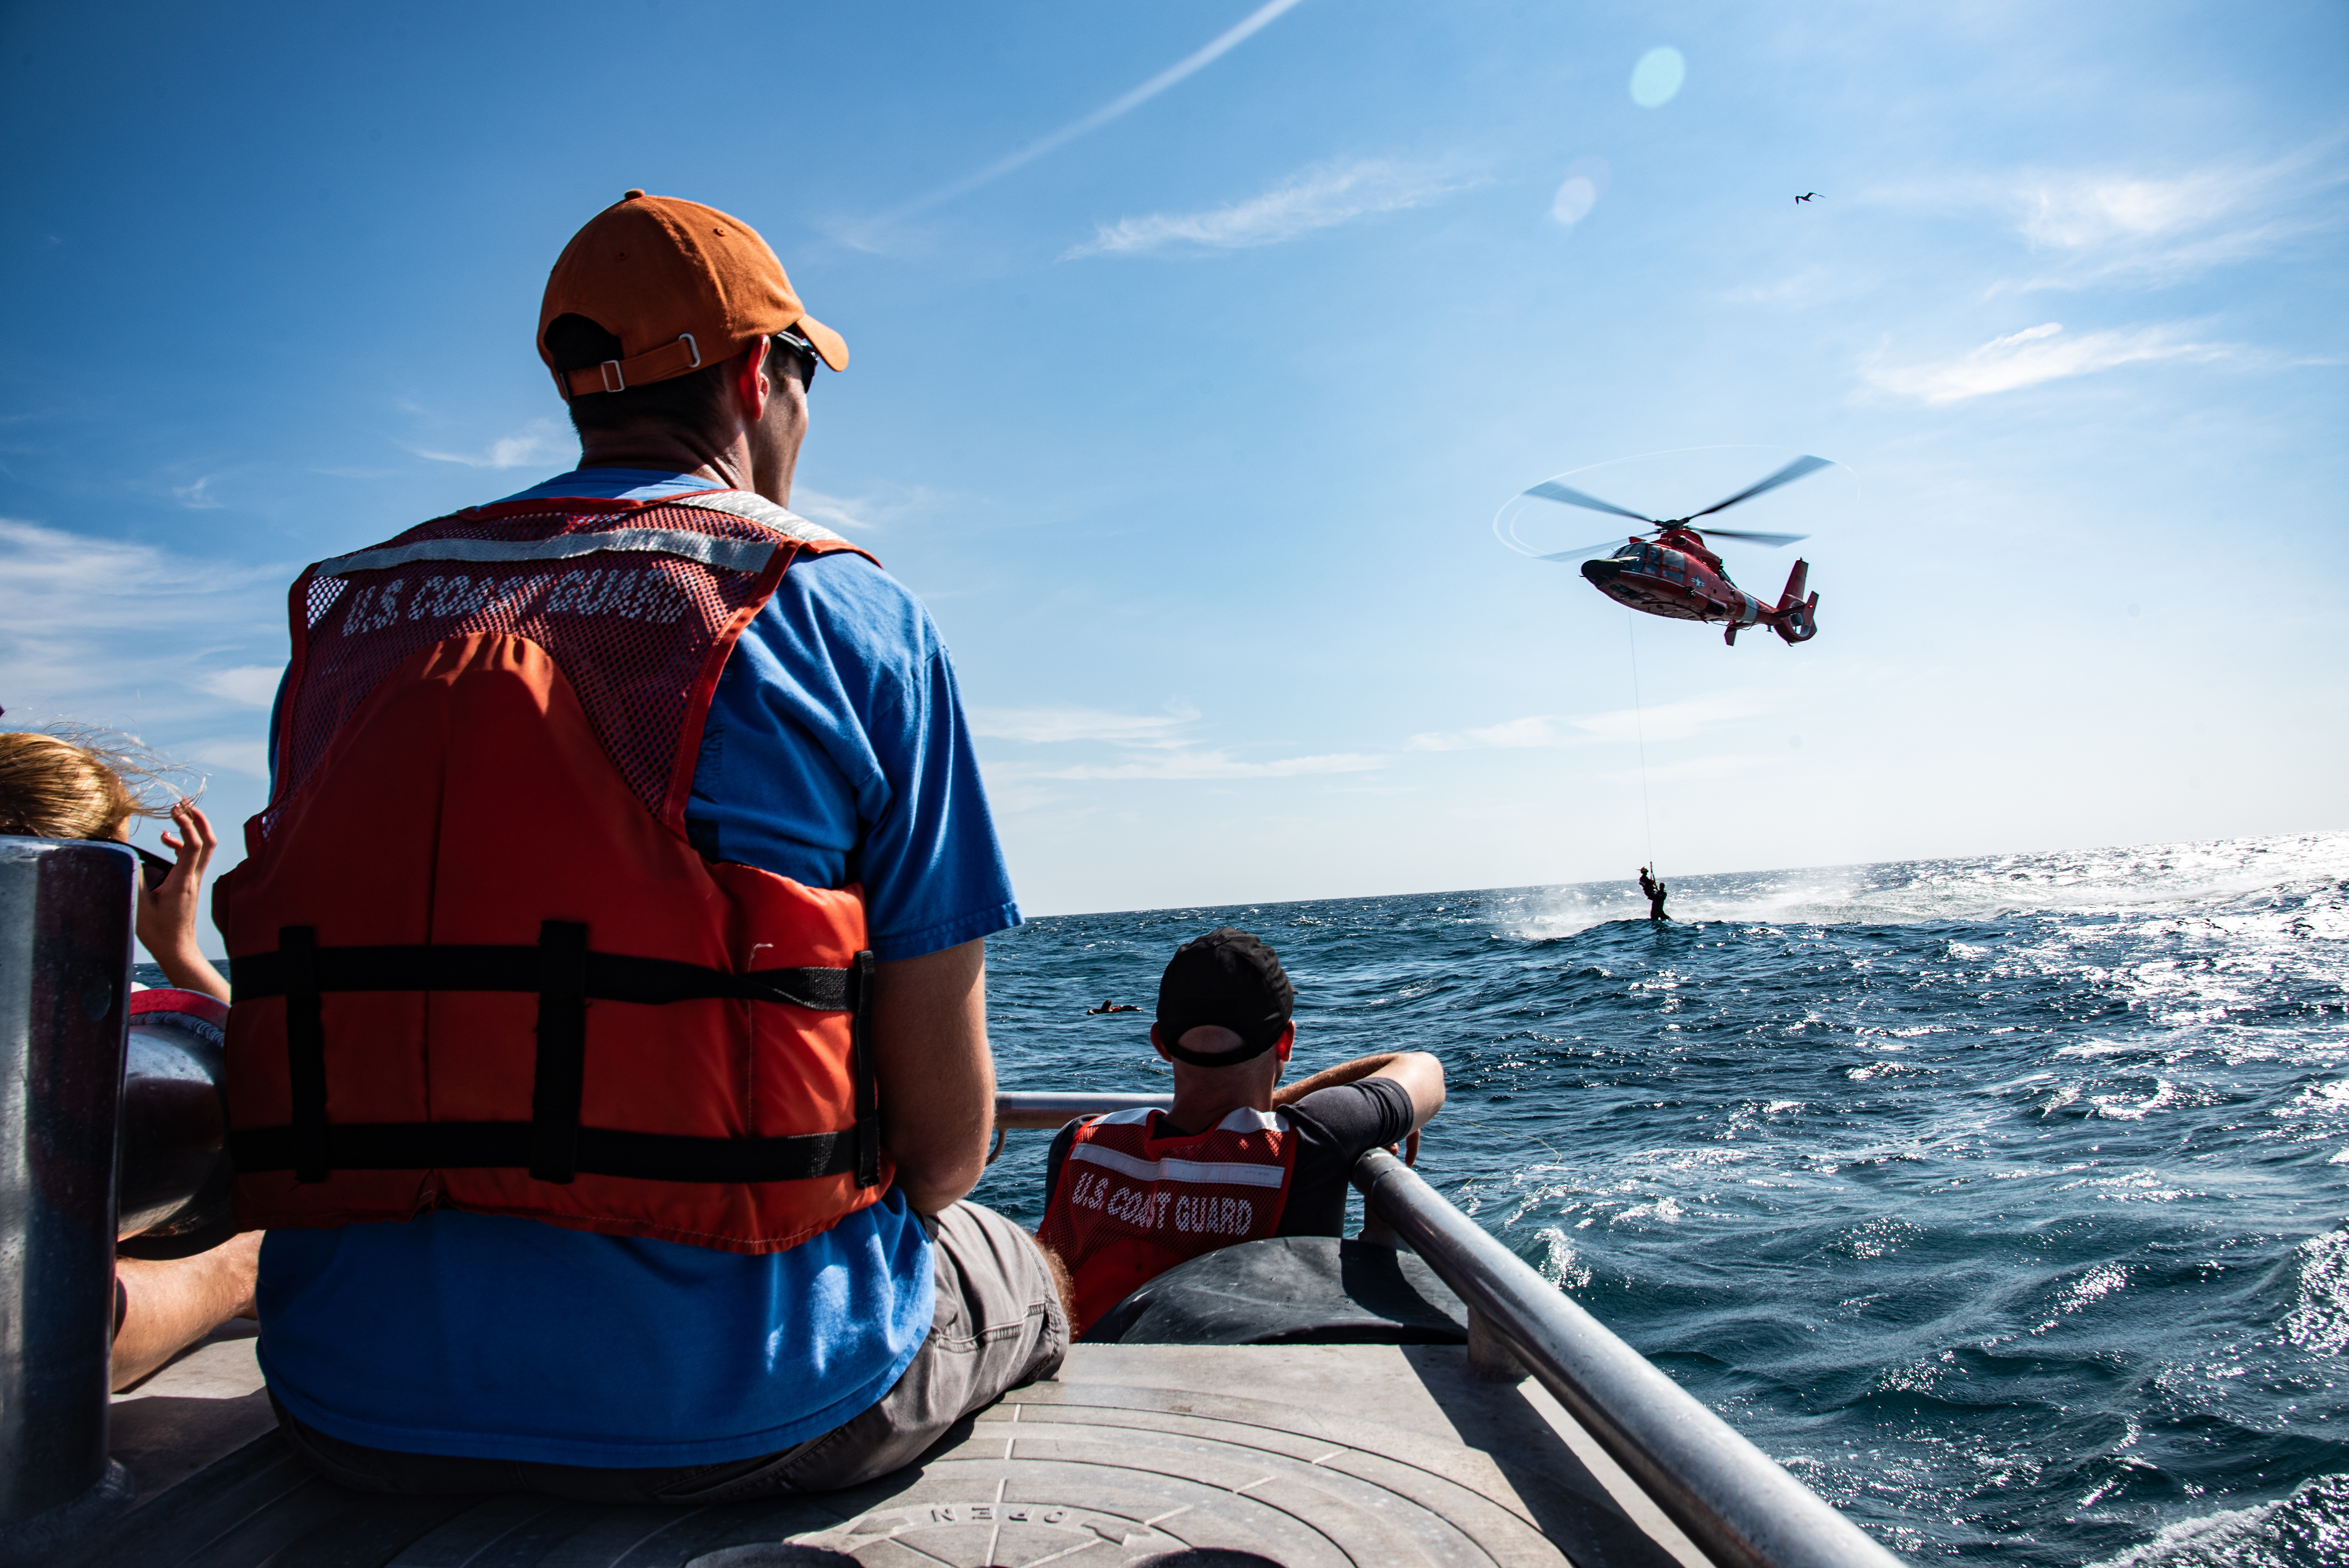 Shaw Afb Airmen Uscg Hone Joint Water Rescue Skills U S Air Force Article Display